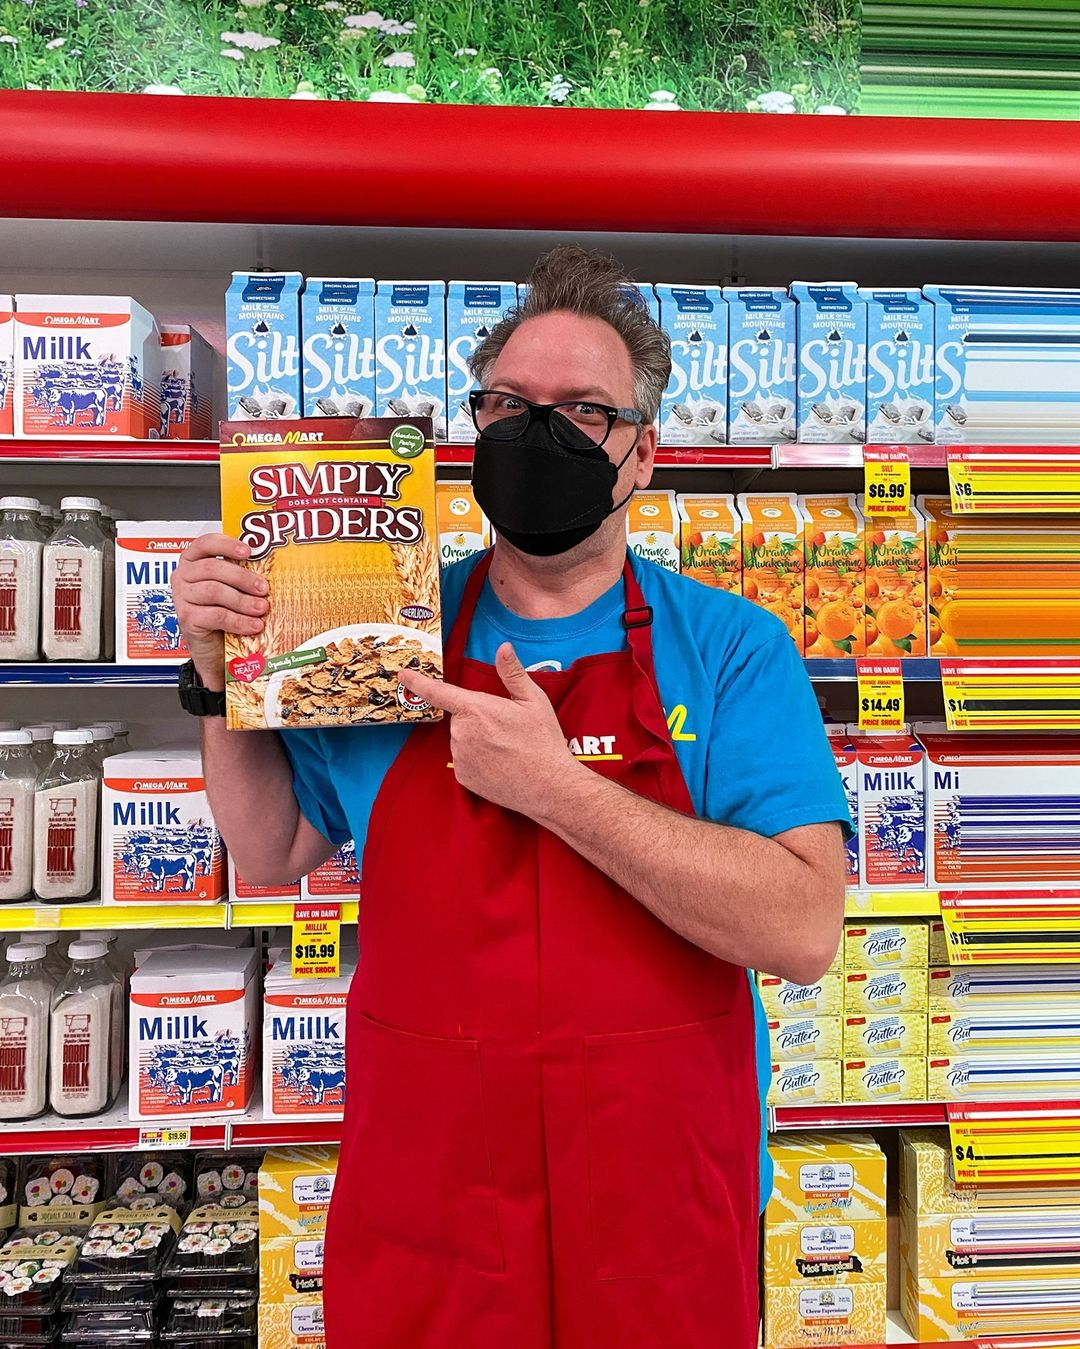 Omega Mart employee with a black mask and glasses, holding a box of Simply Spiders cereal and pointing to it